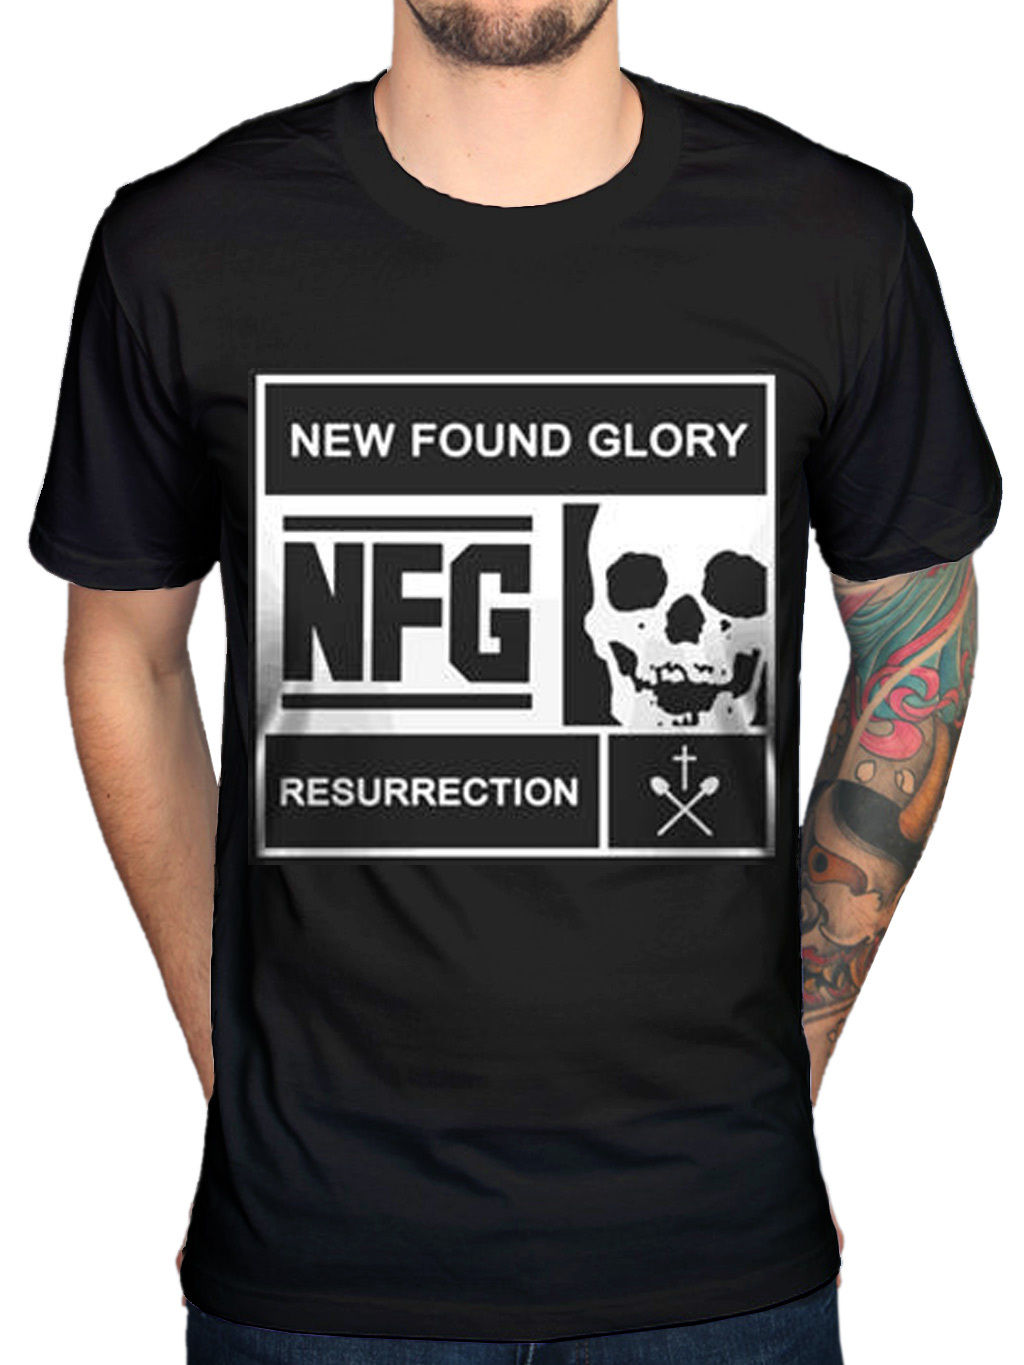 Official New Found Glory Blocked Resurrection T Shirt Pop Punk Band Merchandise